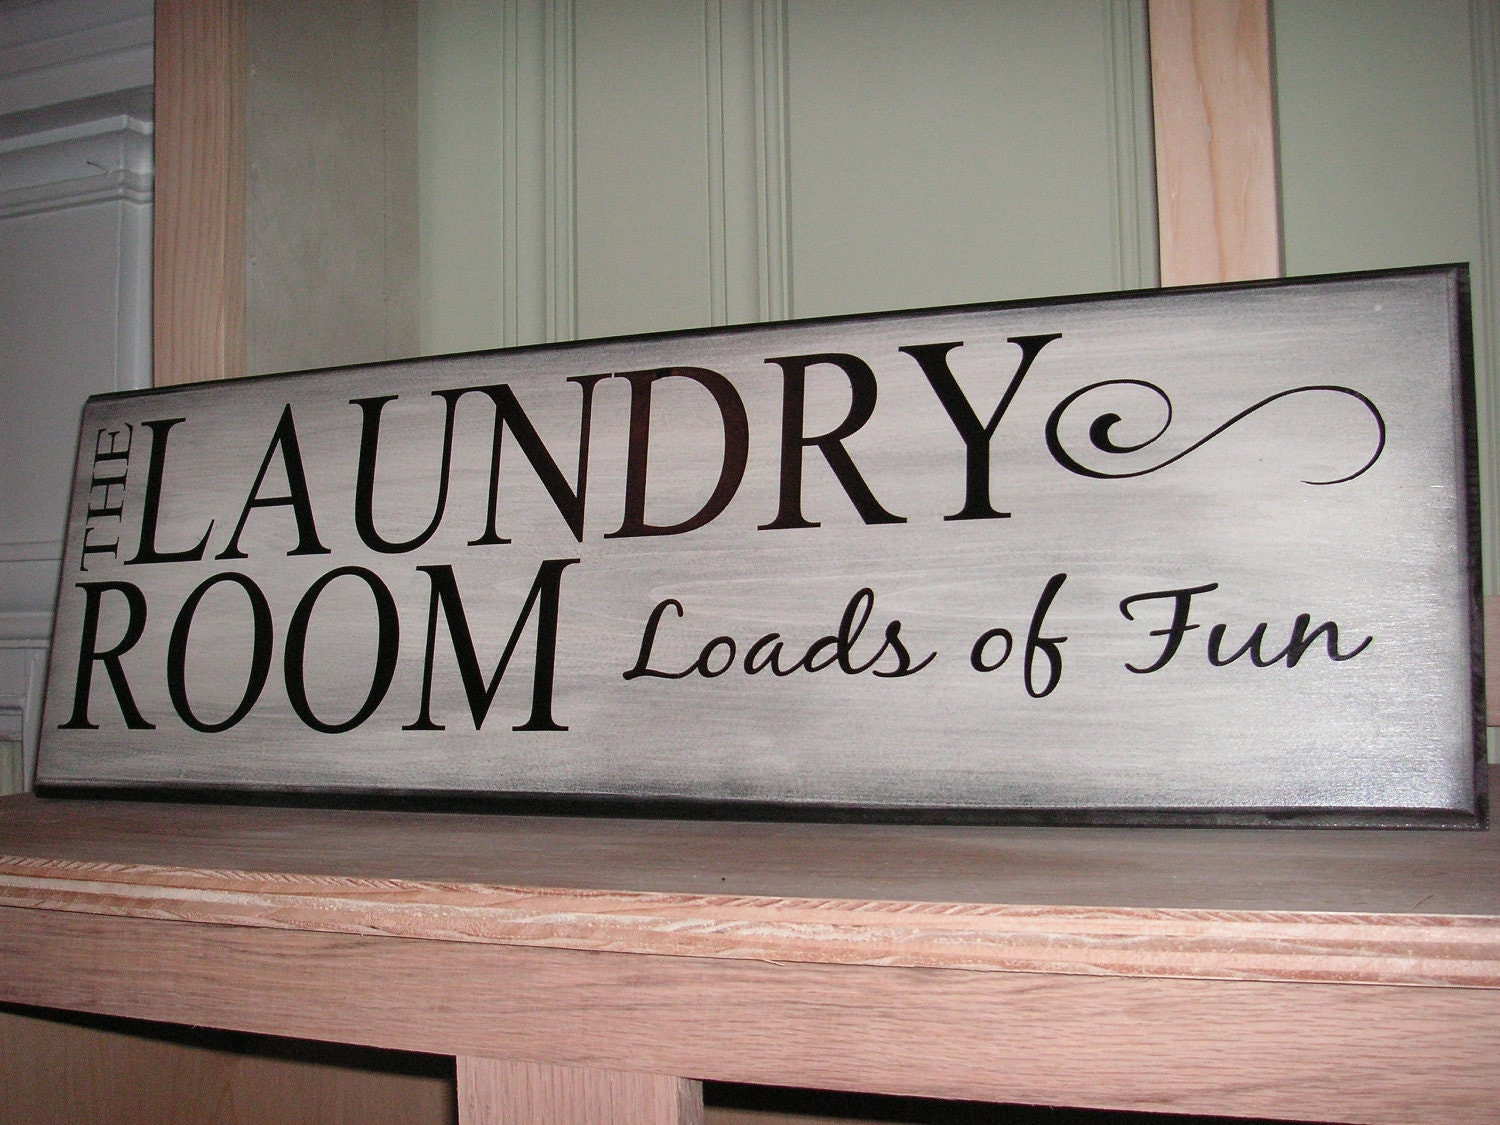 The Laundry Room Loads Of Fun Sign. Alcoholic Recovery Rate Us Home Mortgage Rates. Home Loan Rates California What Is Laminating. India Software Development 4 Savings Account. Real Estate Postcards That Work. Gene Lilly Surety Bonds Credit Card Concierge. Dentist In Patchogue Ny Where To Invest 50000. American Express Ticket Savings Center. House Insurance Comparison Site